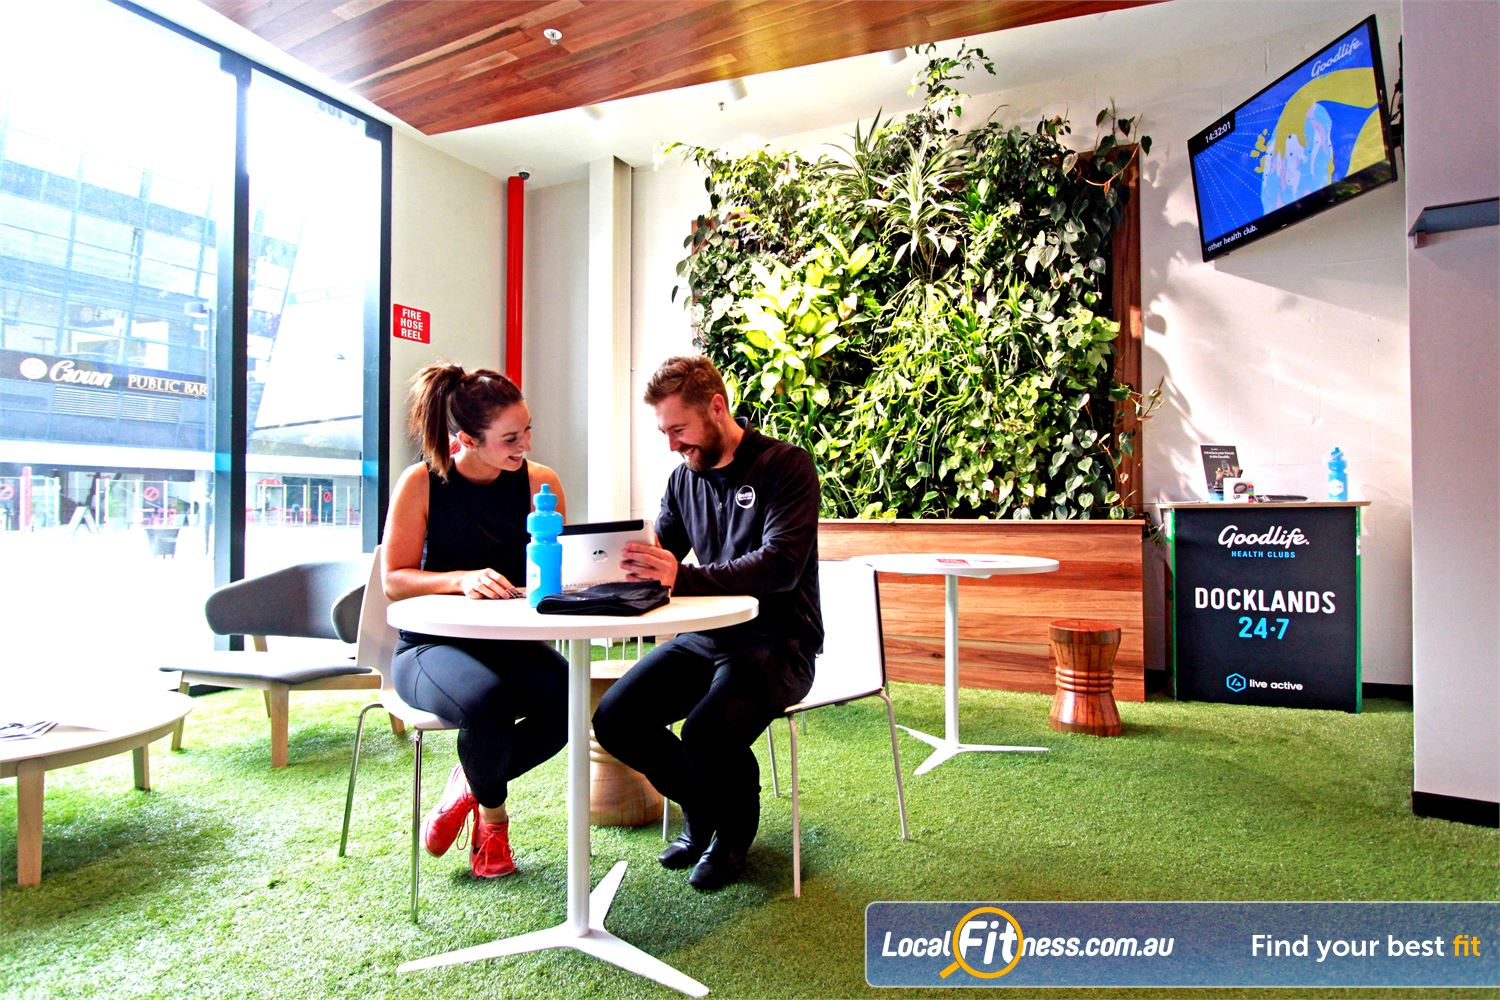 Goodlife Health Clubs Docklands The luscious green members lounge.